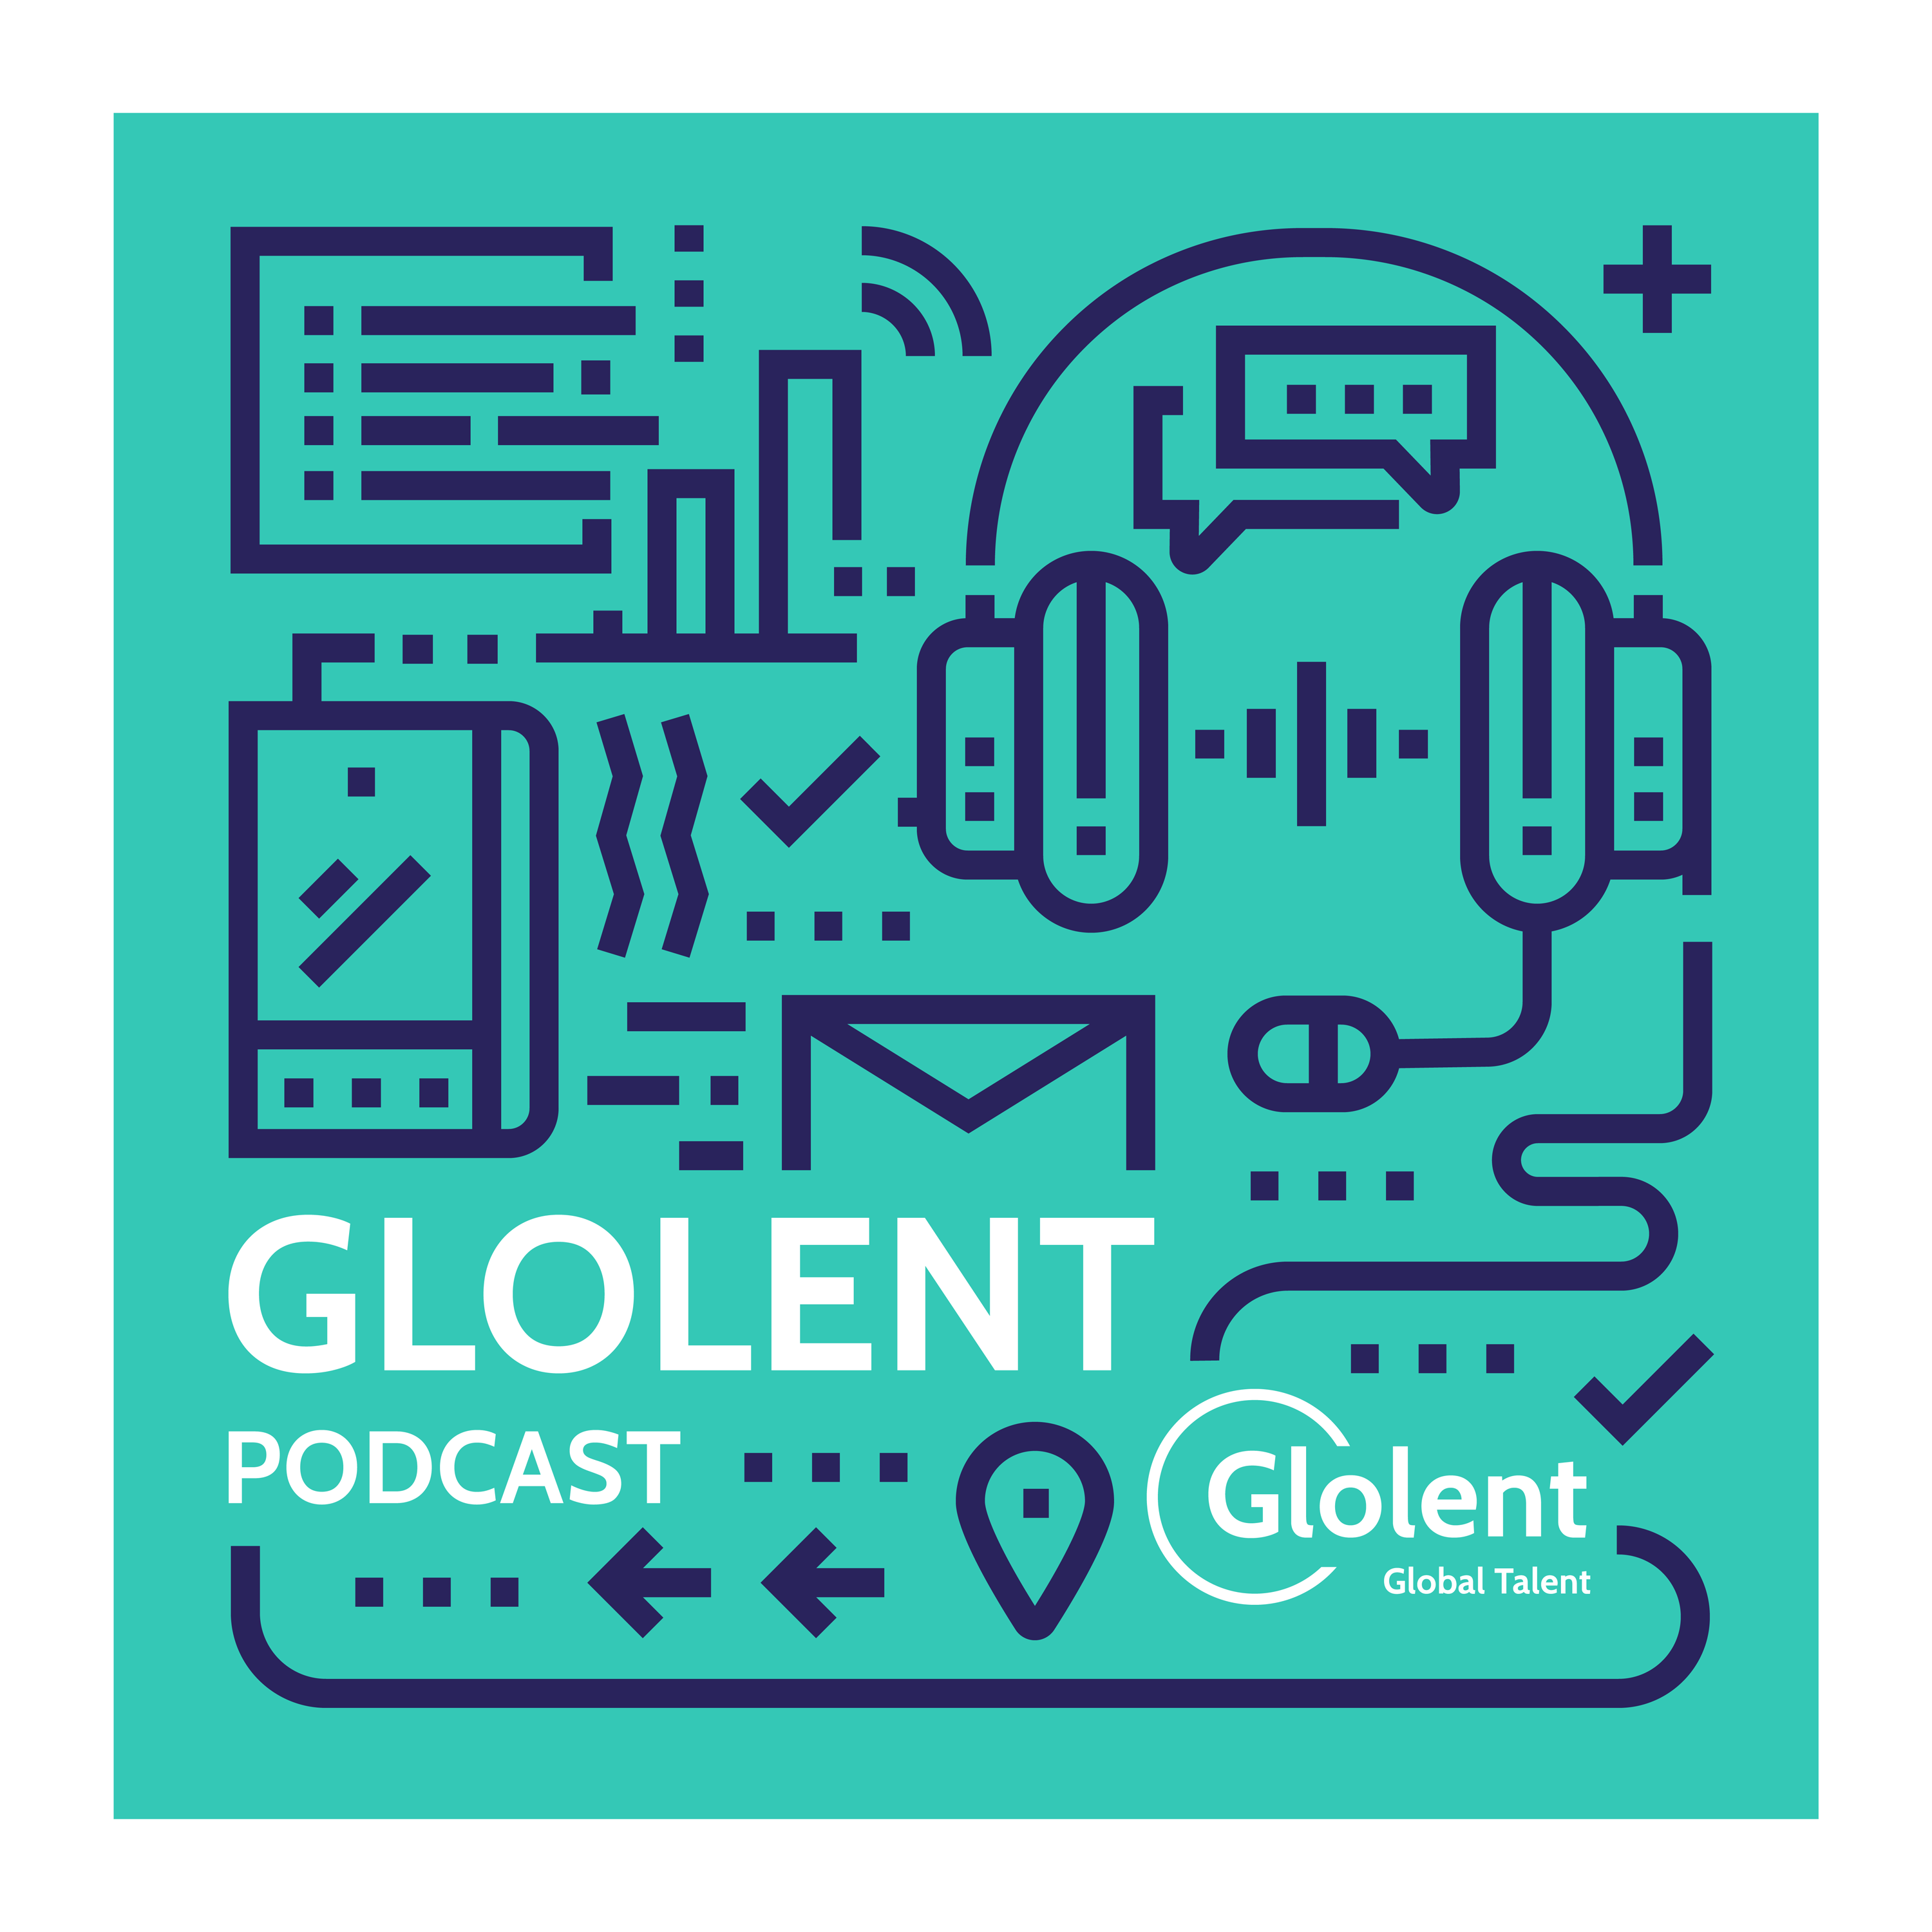 Glolent Podcast - Freelancing and Remote Work in Practice